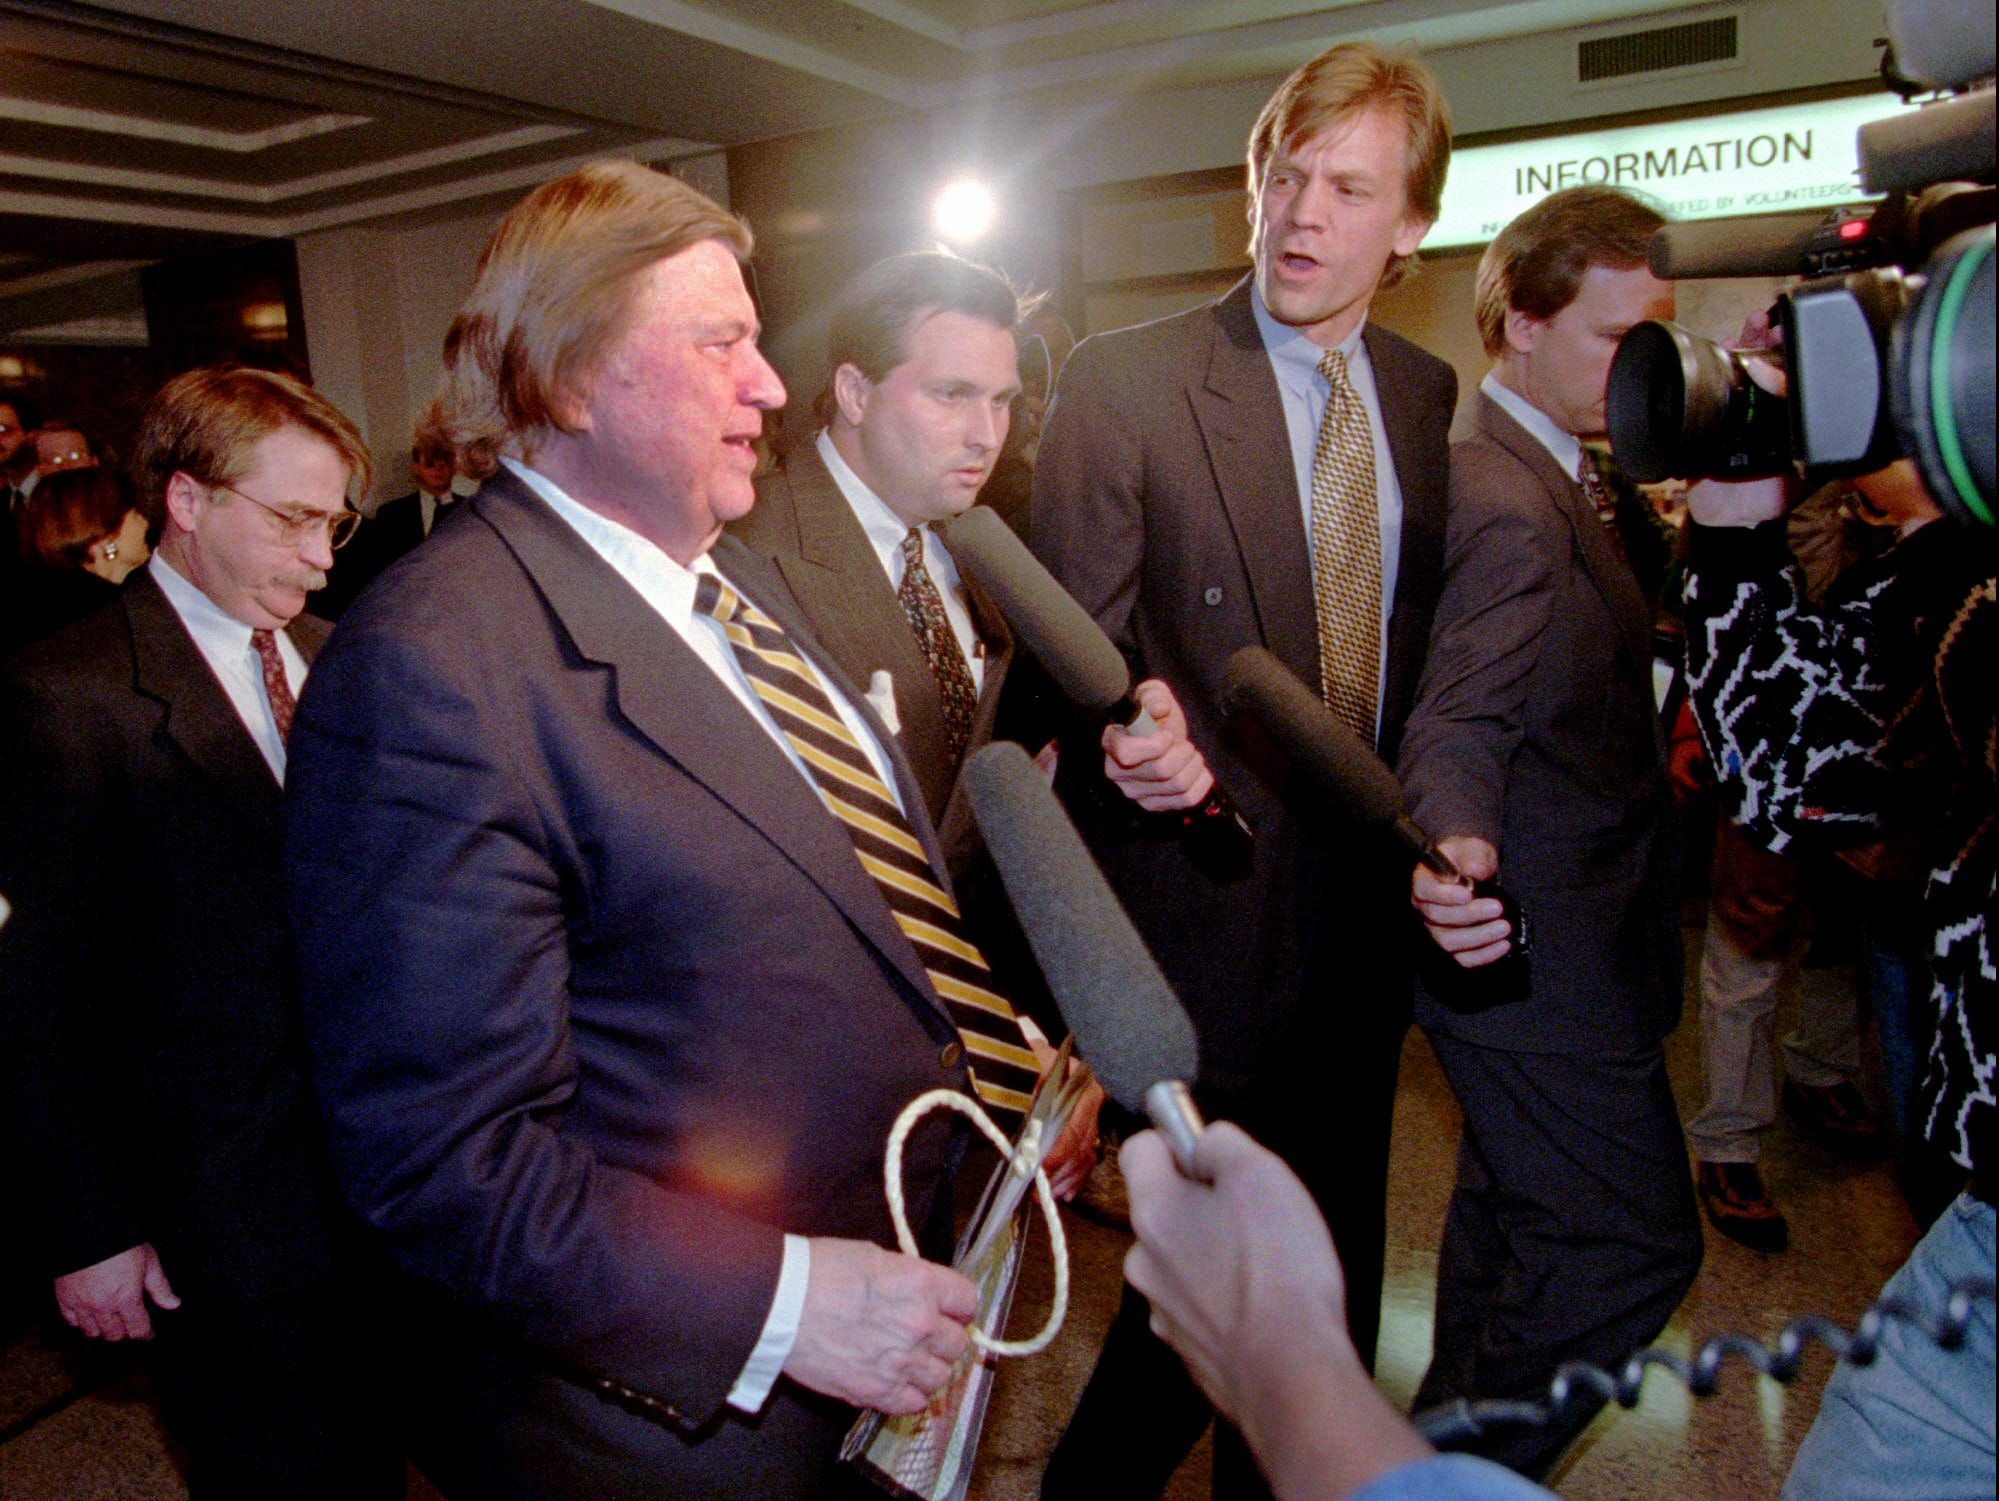 Houston Oilers owner Bud Adams, second from left, is the center of attention in Nashville Nov. 16, 1995 after he signed the deal that will move the Oilers to Nashville providing the city fulfills its requirements.